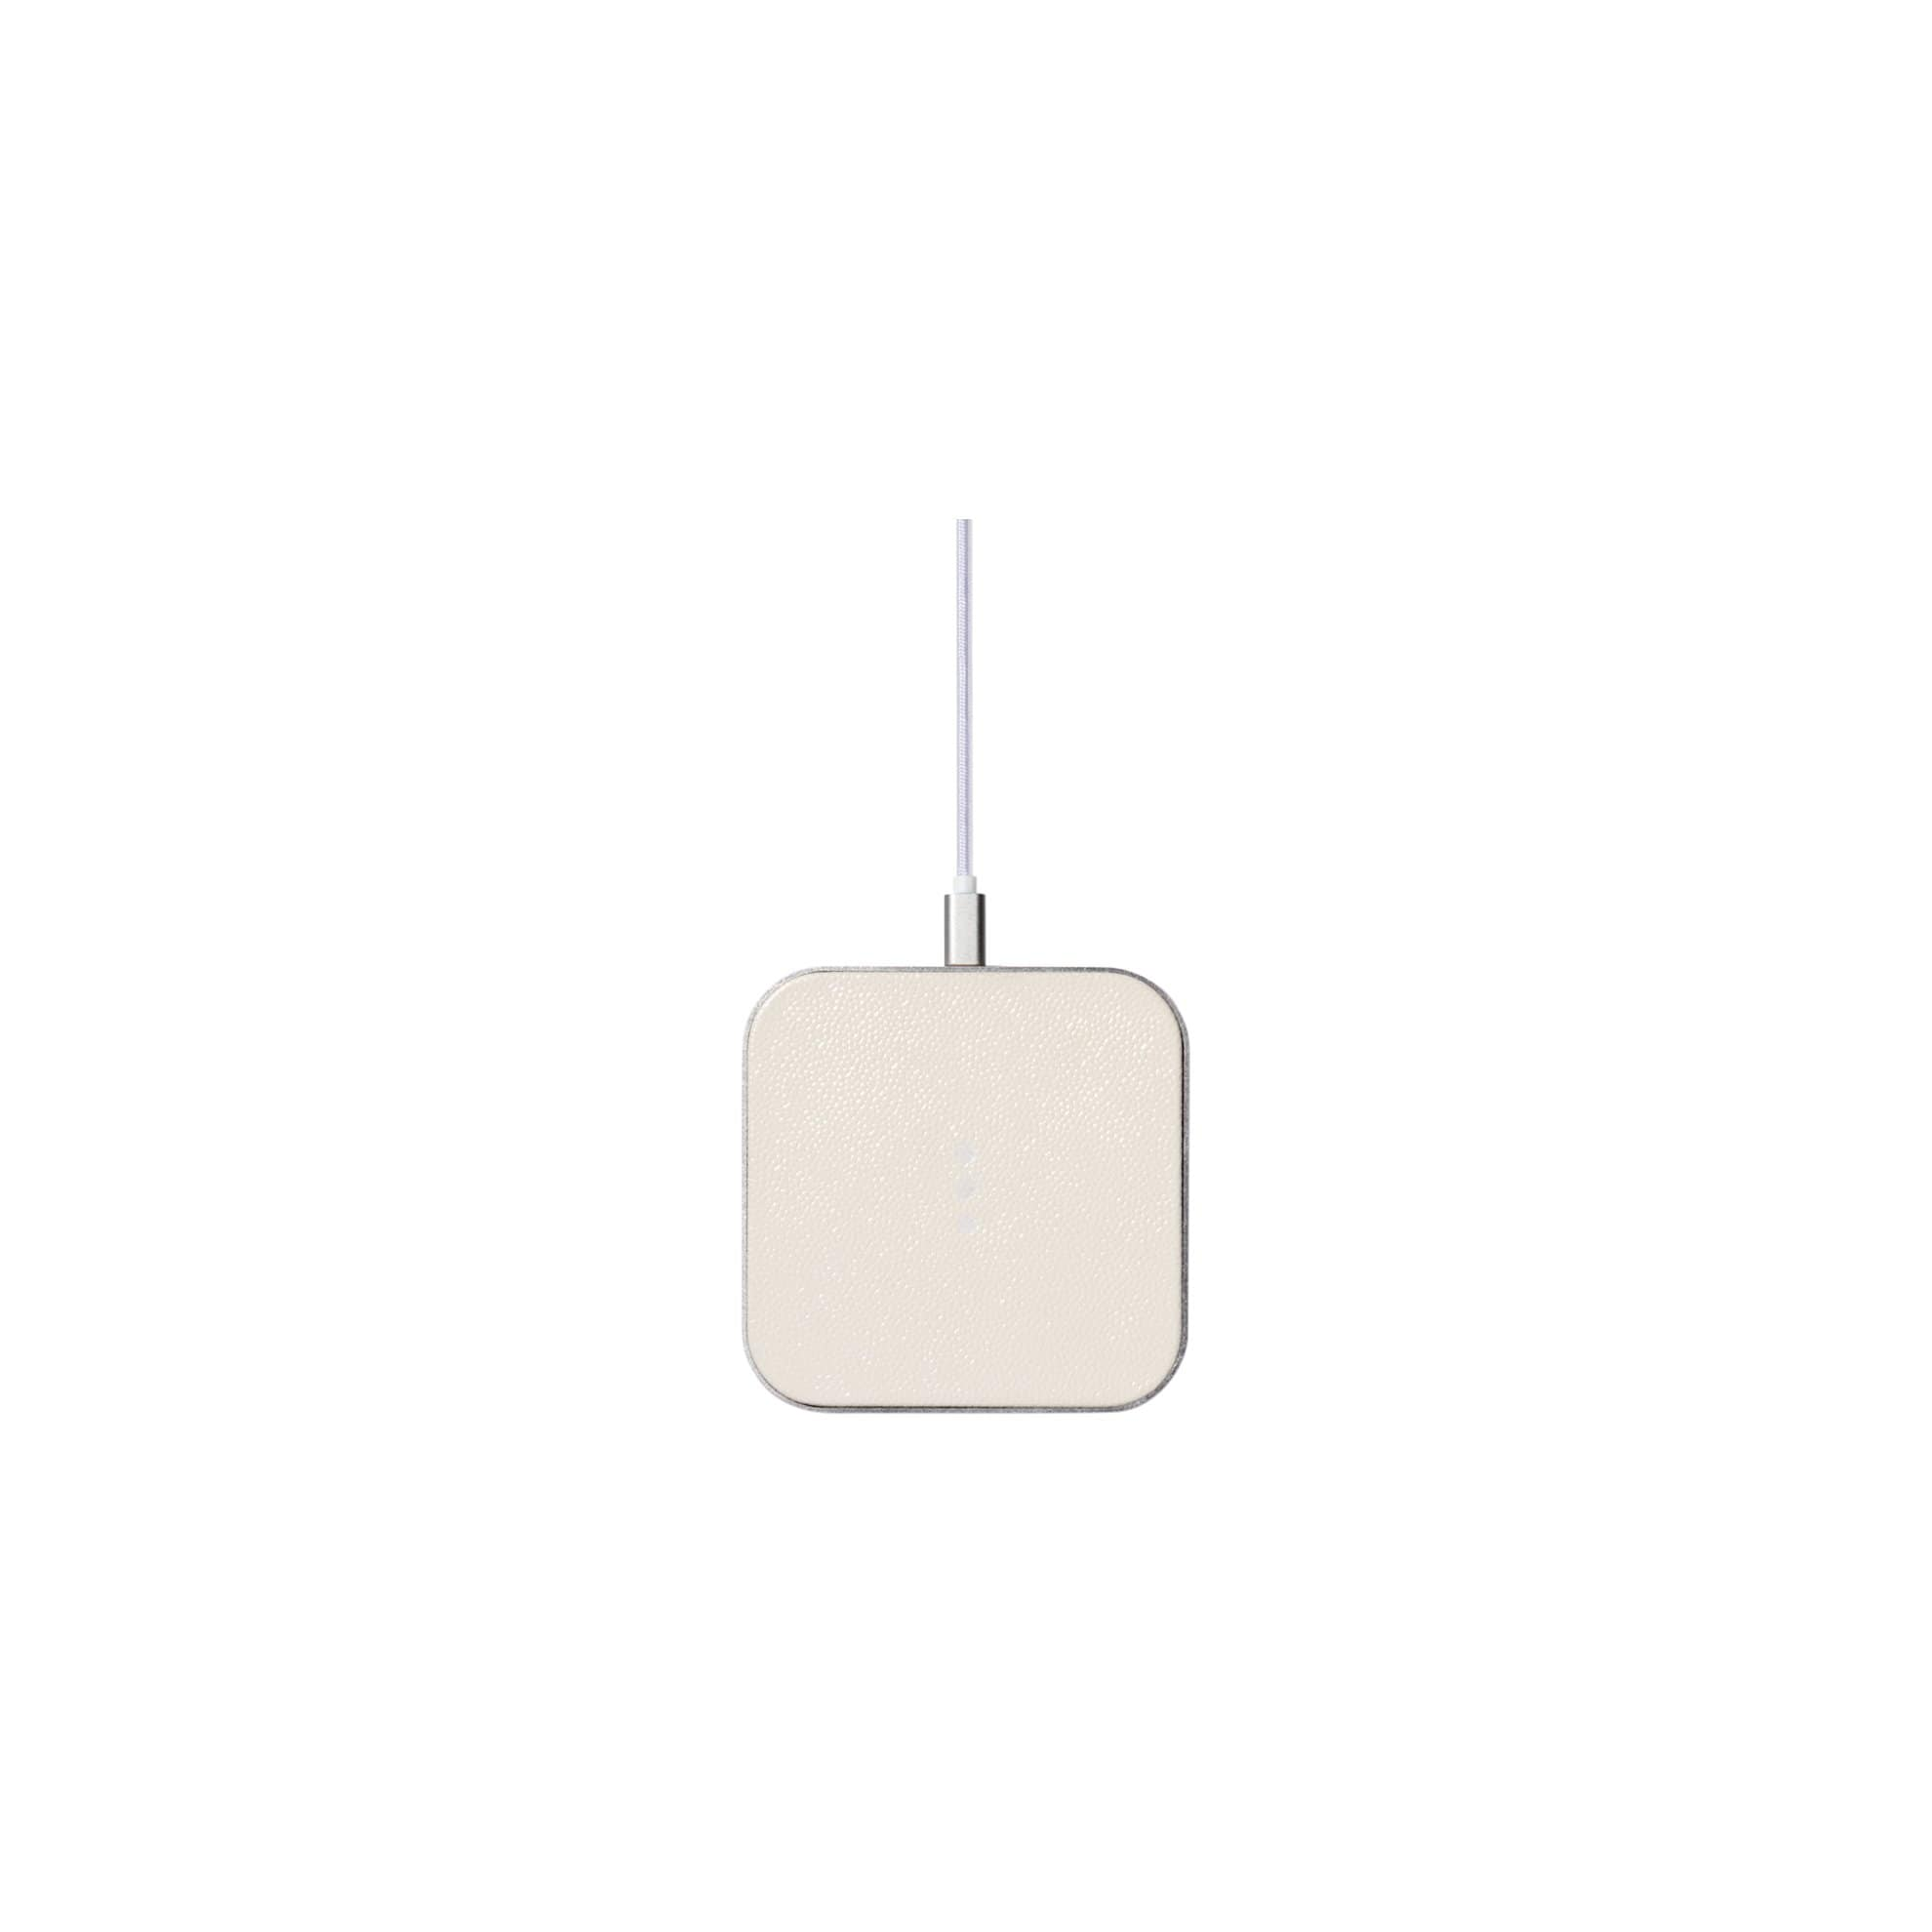 CATCH:1 Wireless Charger in Bone